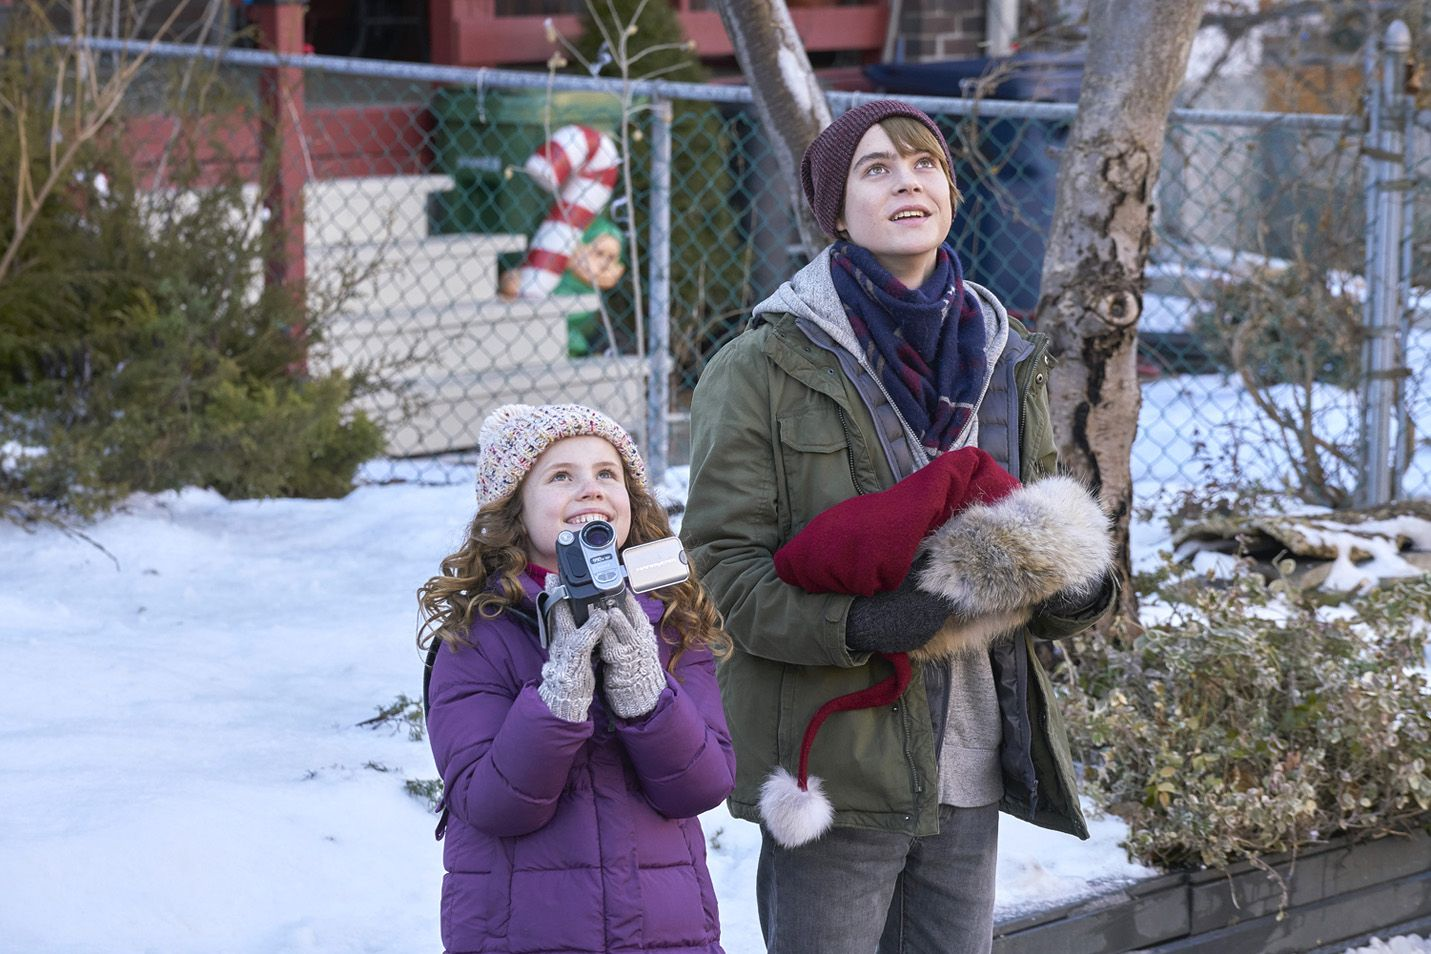 Darby Camp and Judah Lewis in The Christmas Chronicles